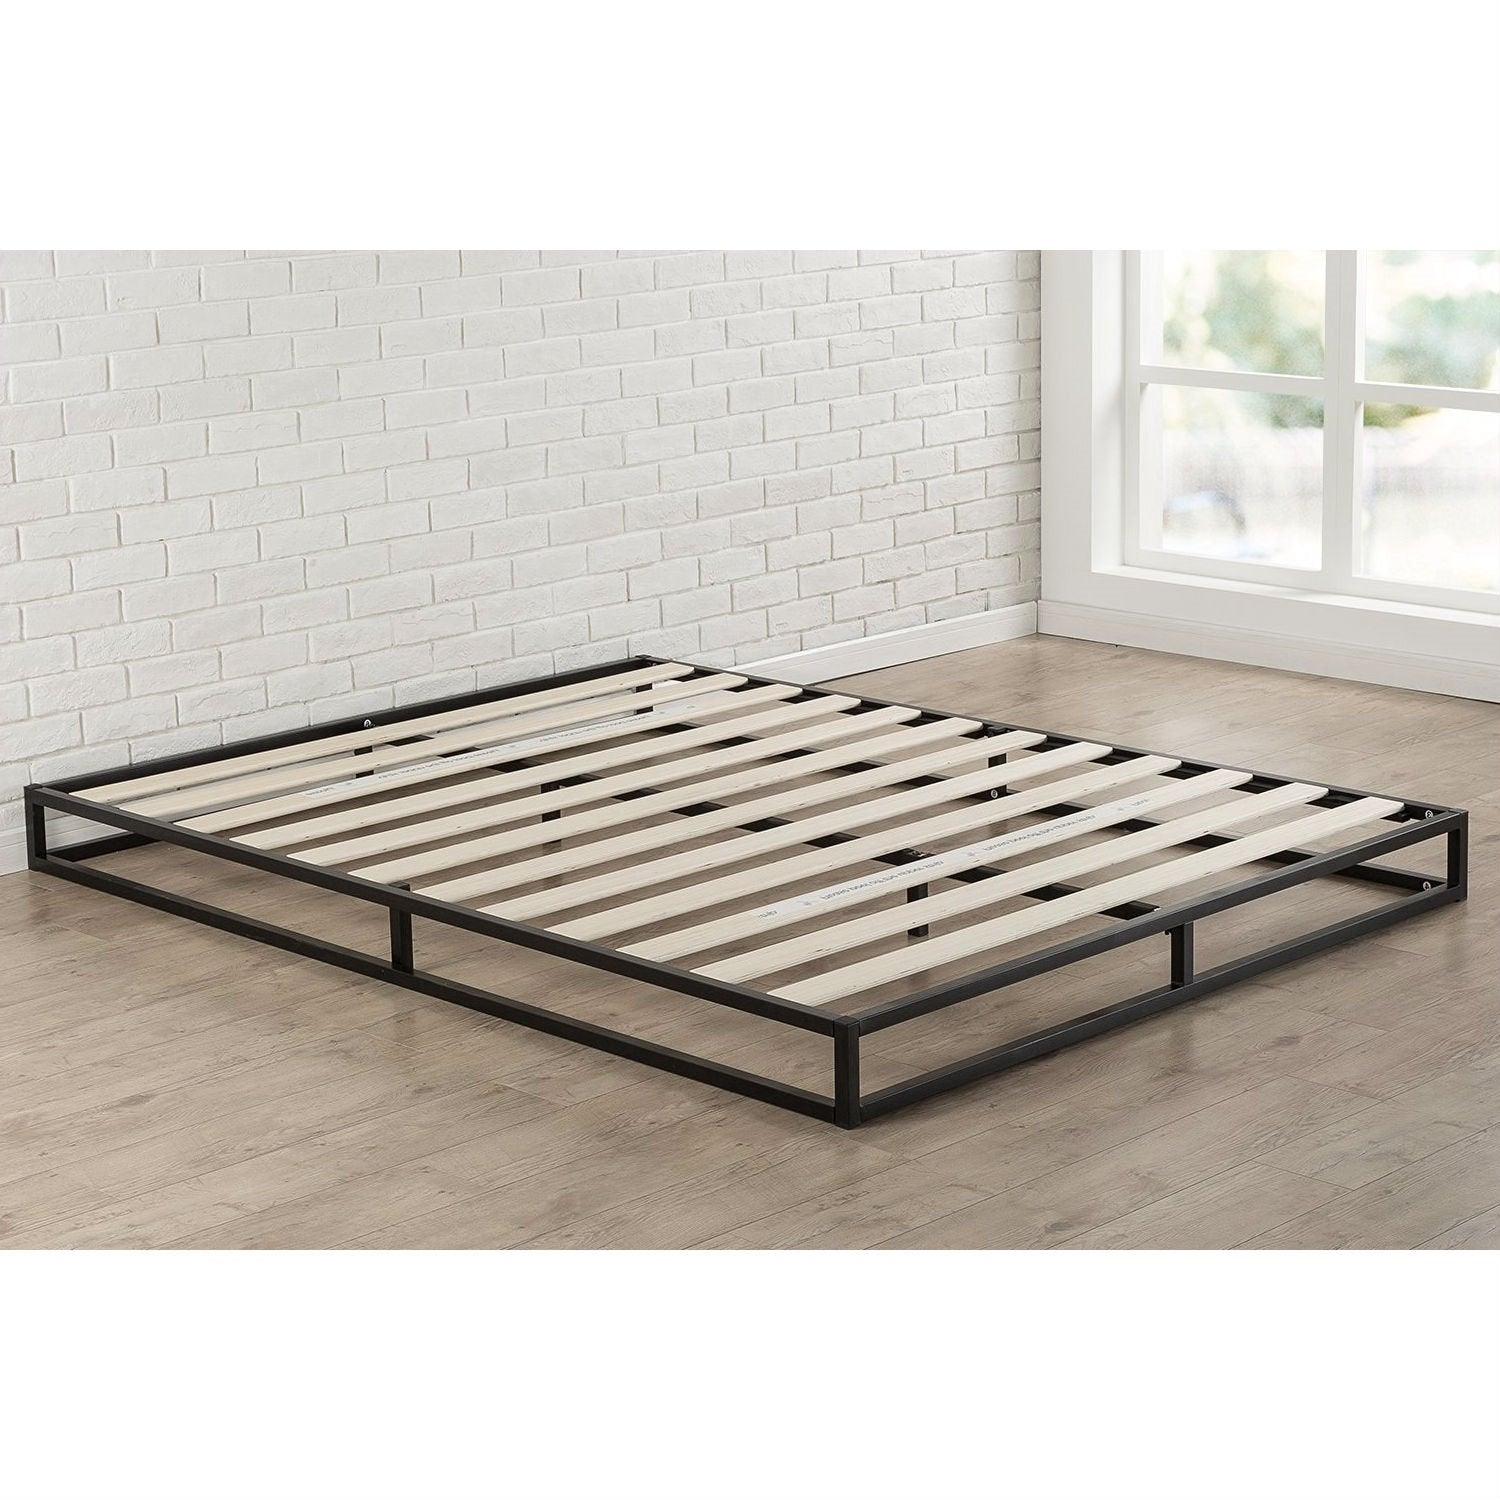 King size 6-inch Low Profile Metal Platform Bed Frame w/ Wood Slat